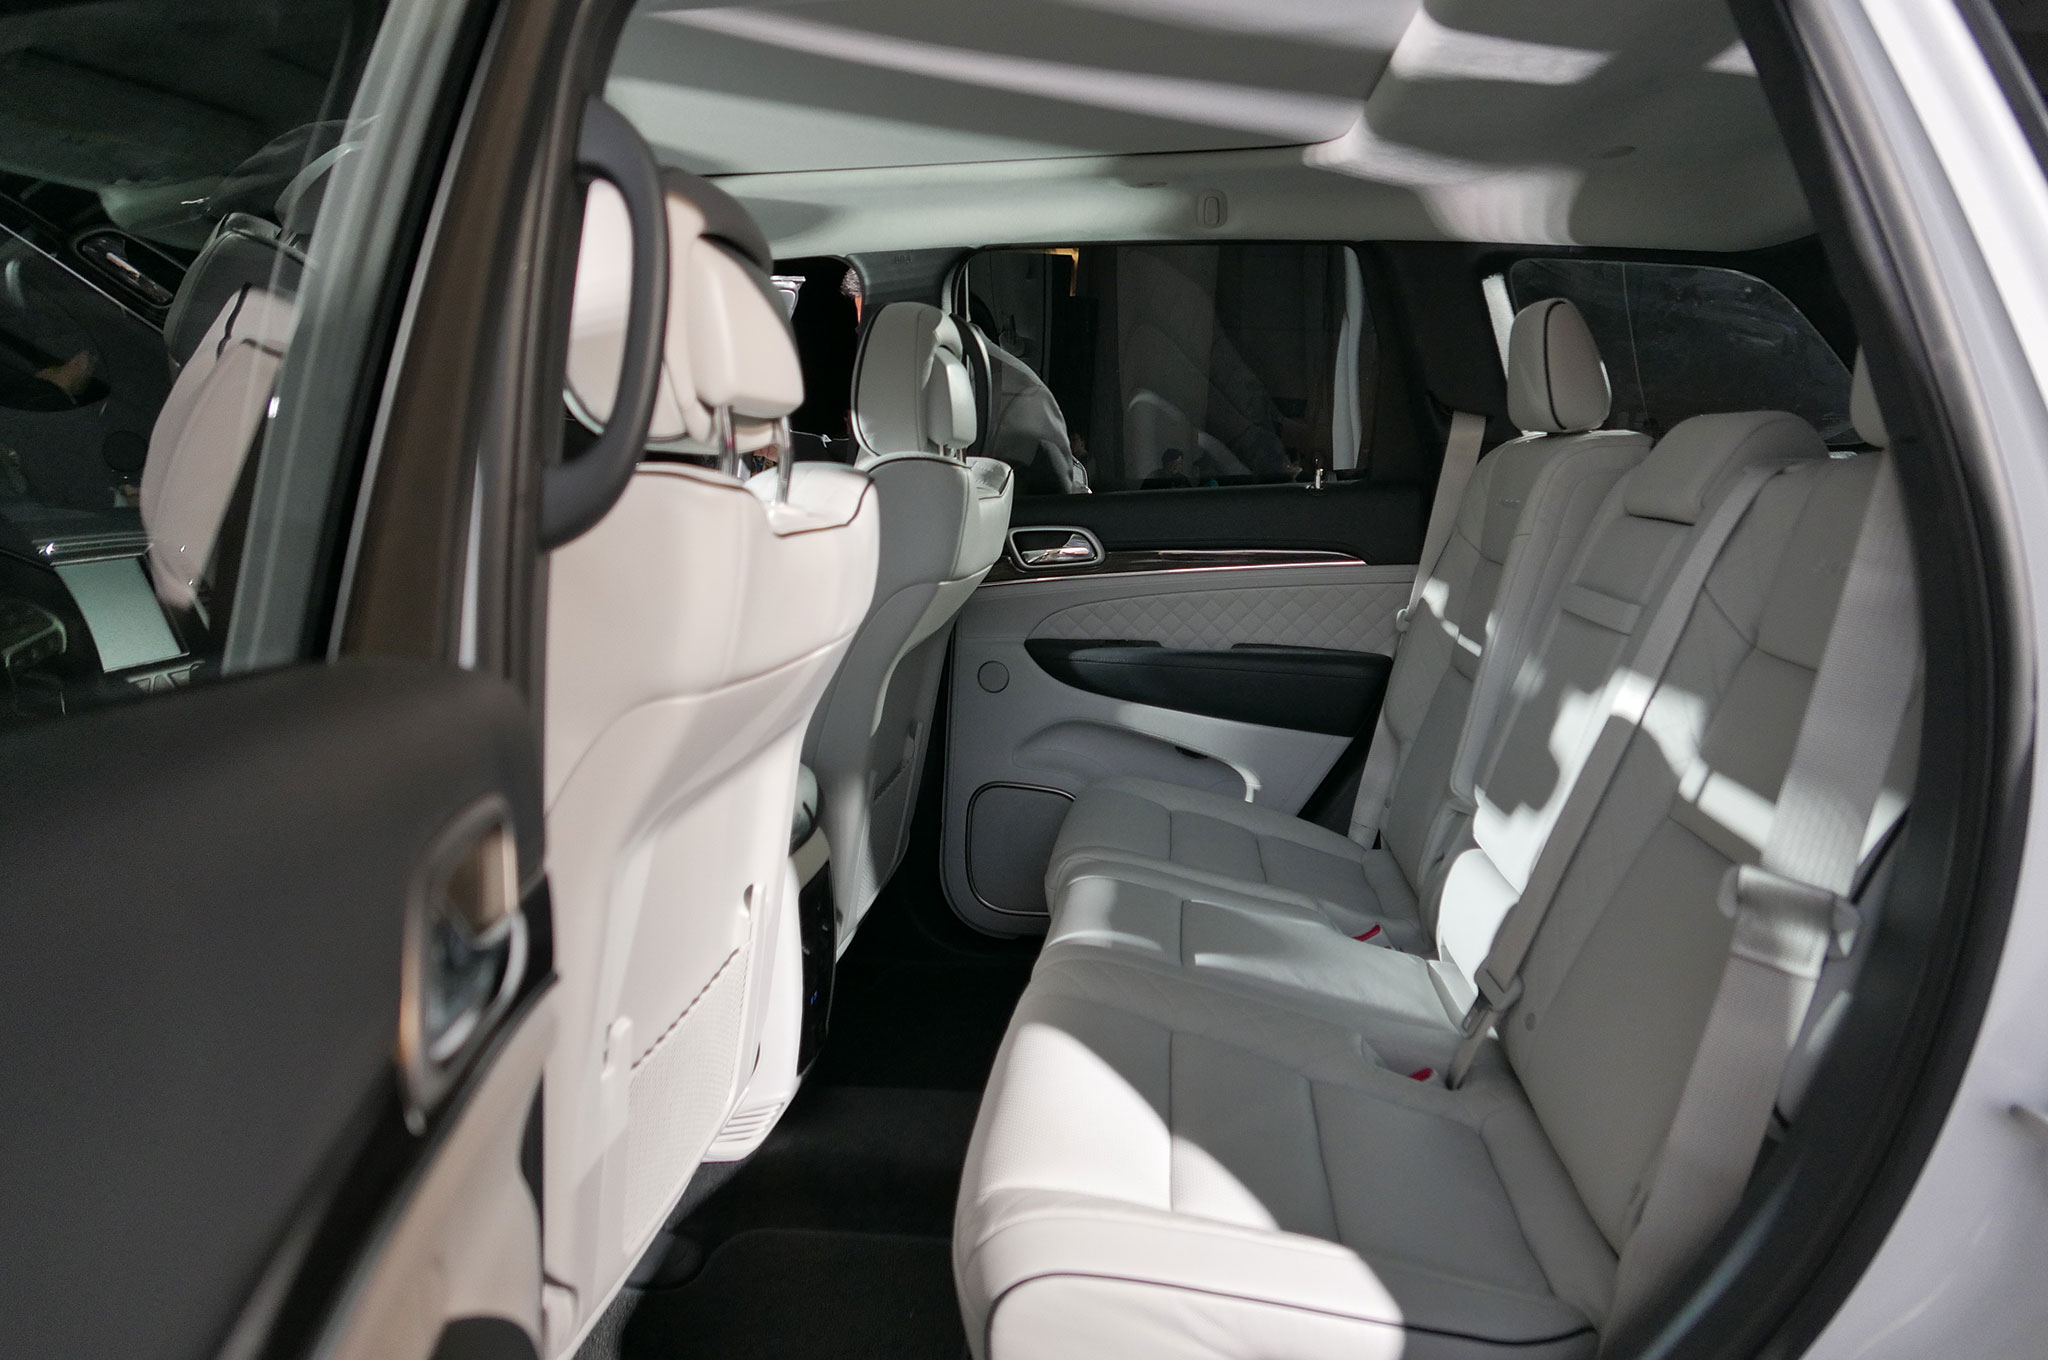 jeep grand cherokee seats how many auto cars. Black Bedroom Furniture Sets. Home Design Ideas